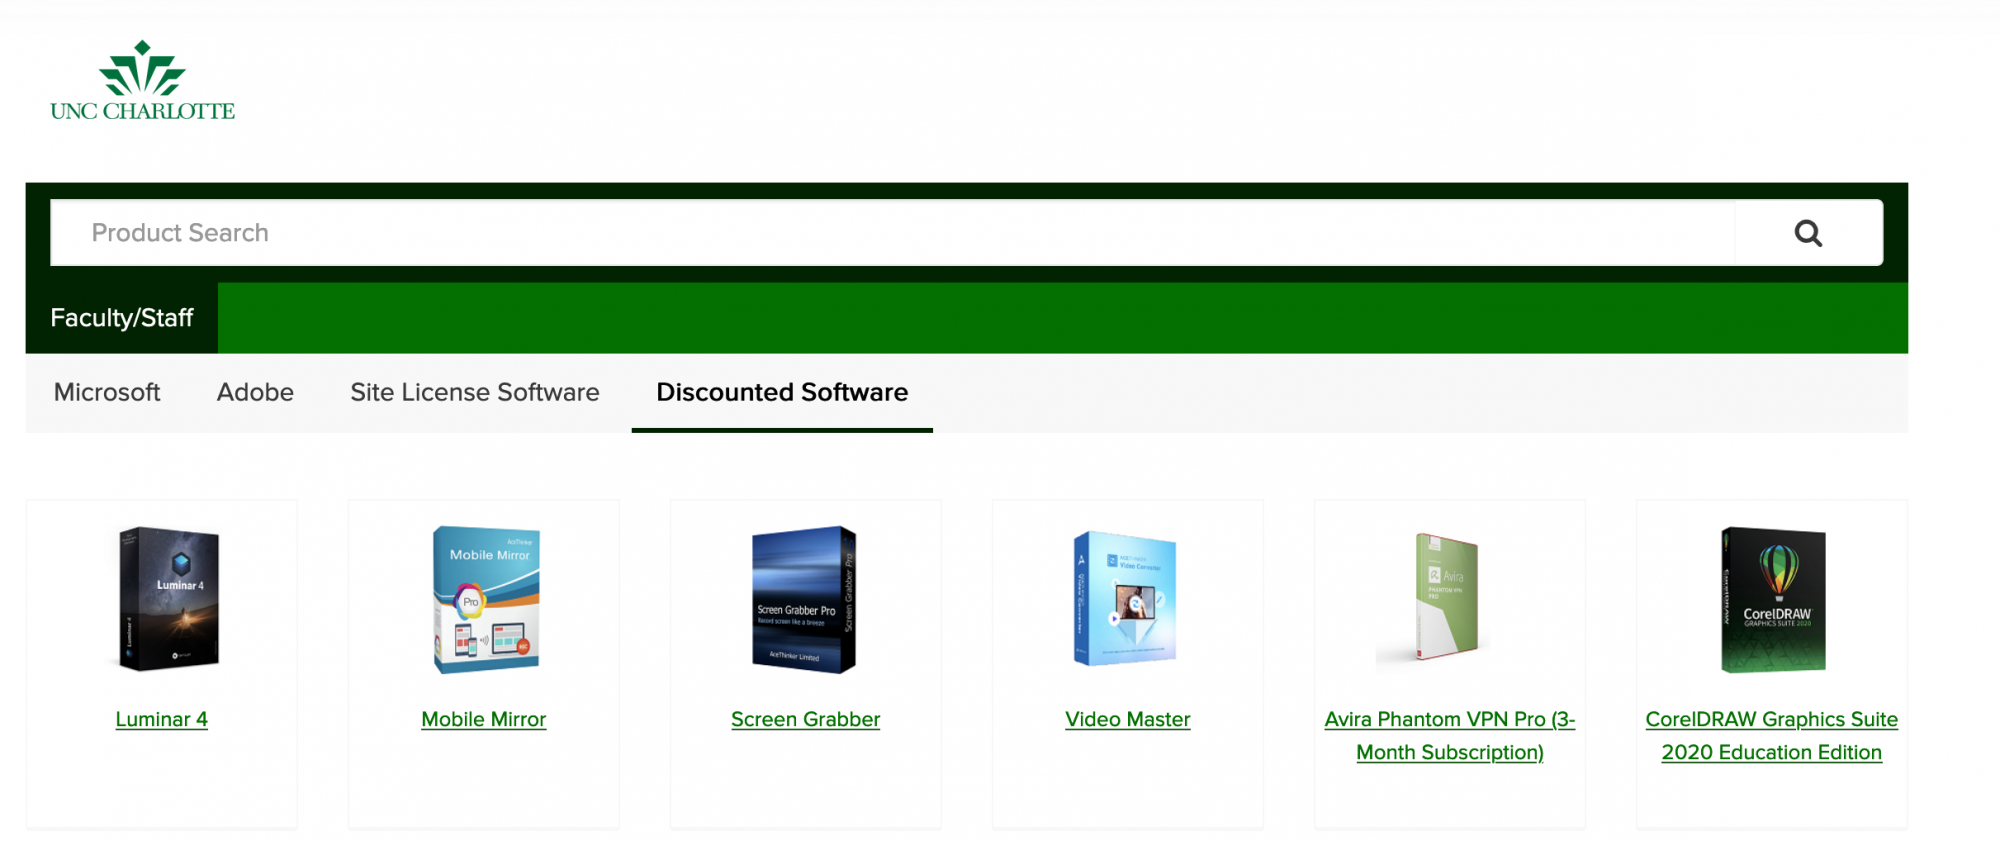 Software.uncc.edu Discounted Software tab preview